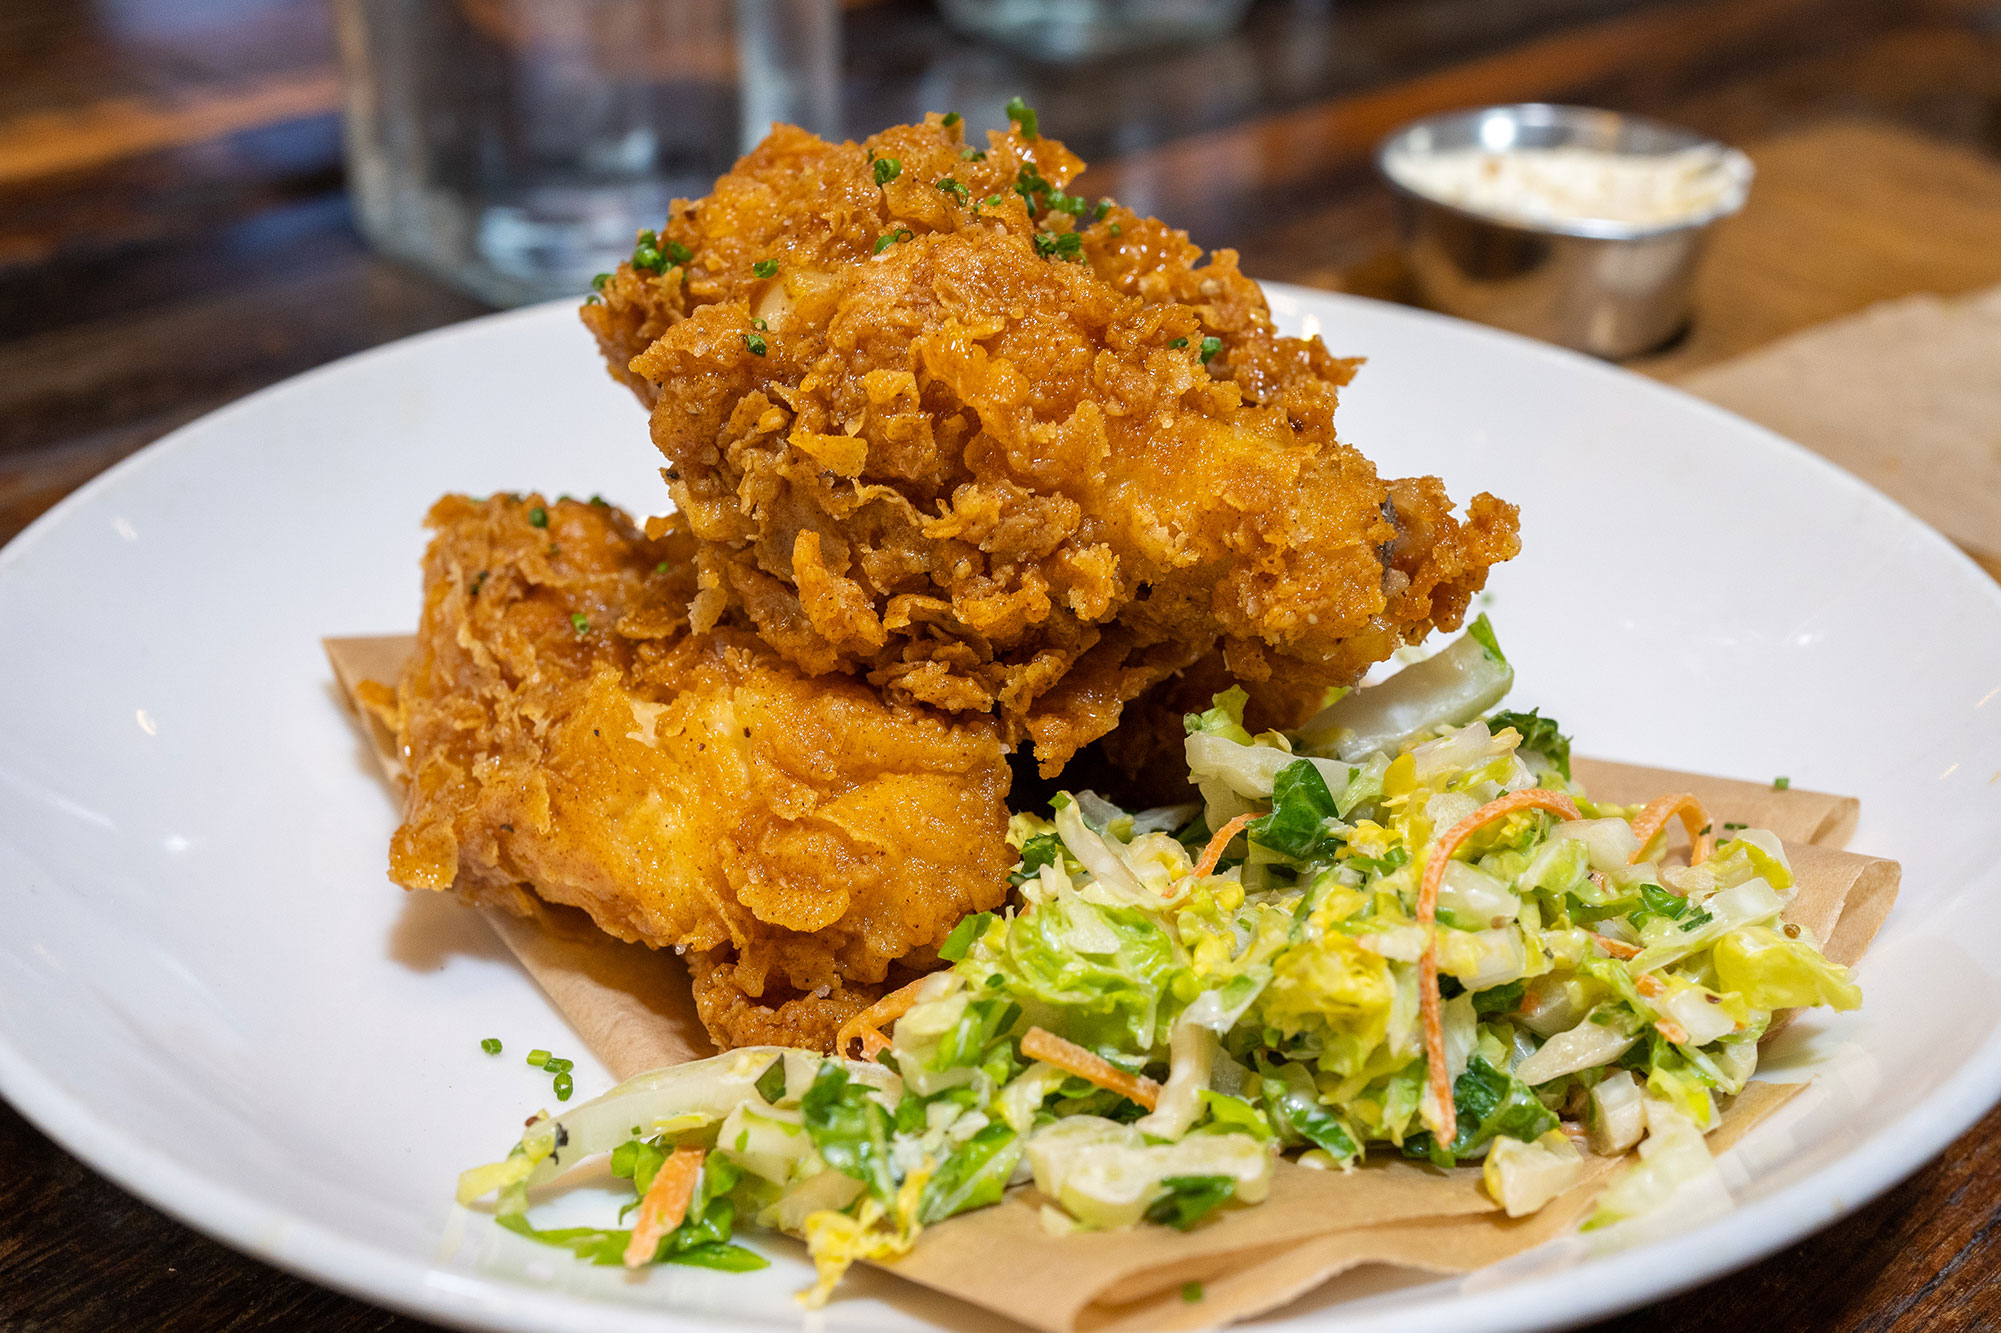 Truffle Honey Laced Fried Chicken